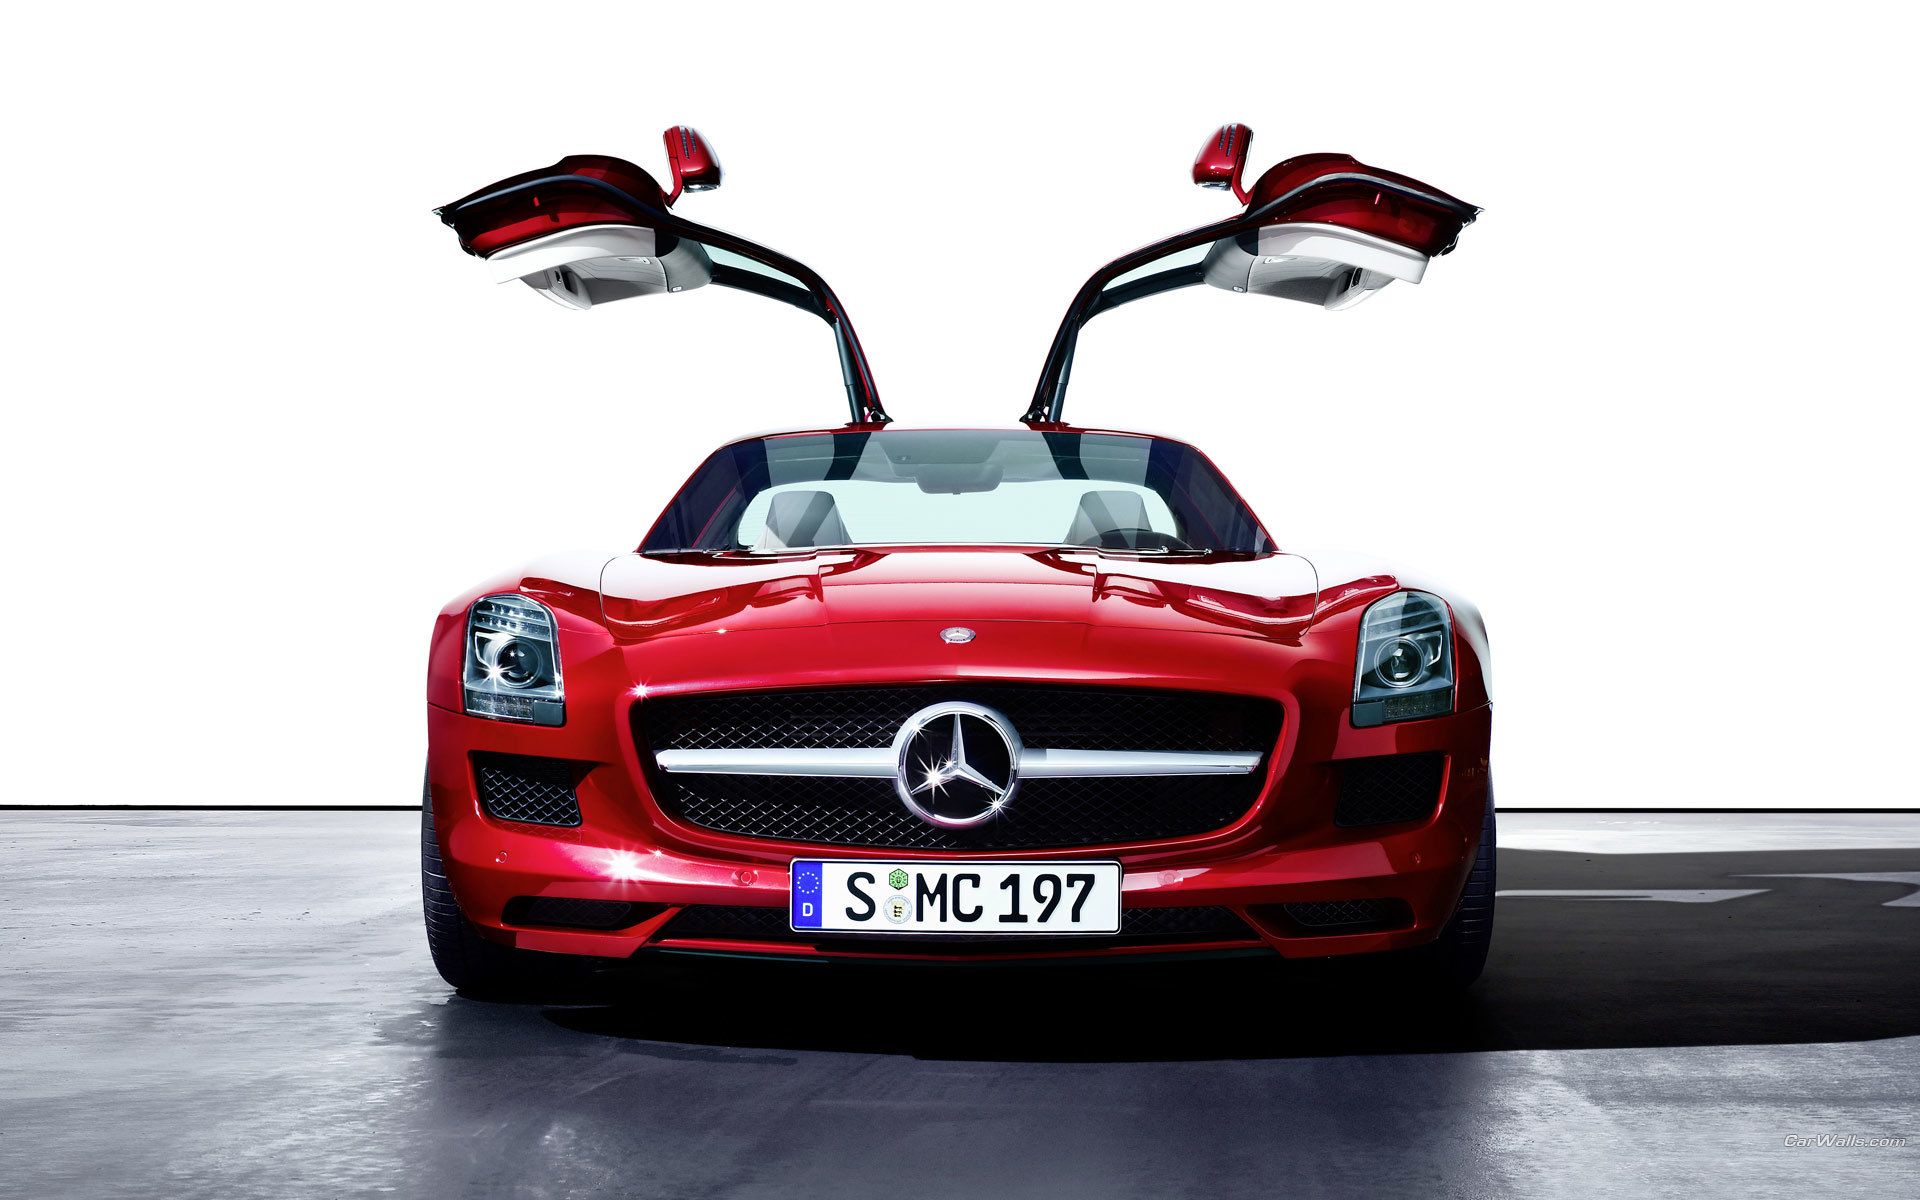 red cars vehicles mercedes-benz HD Wallpaper